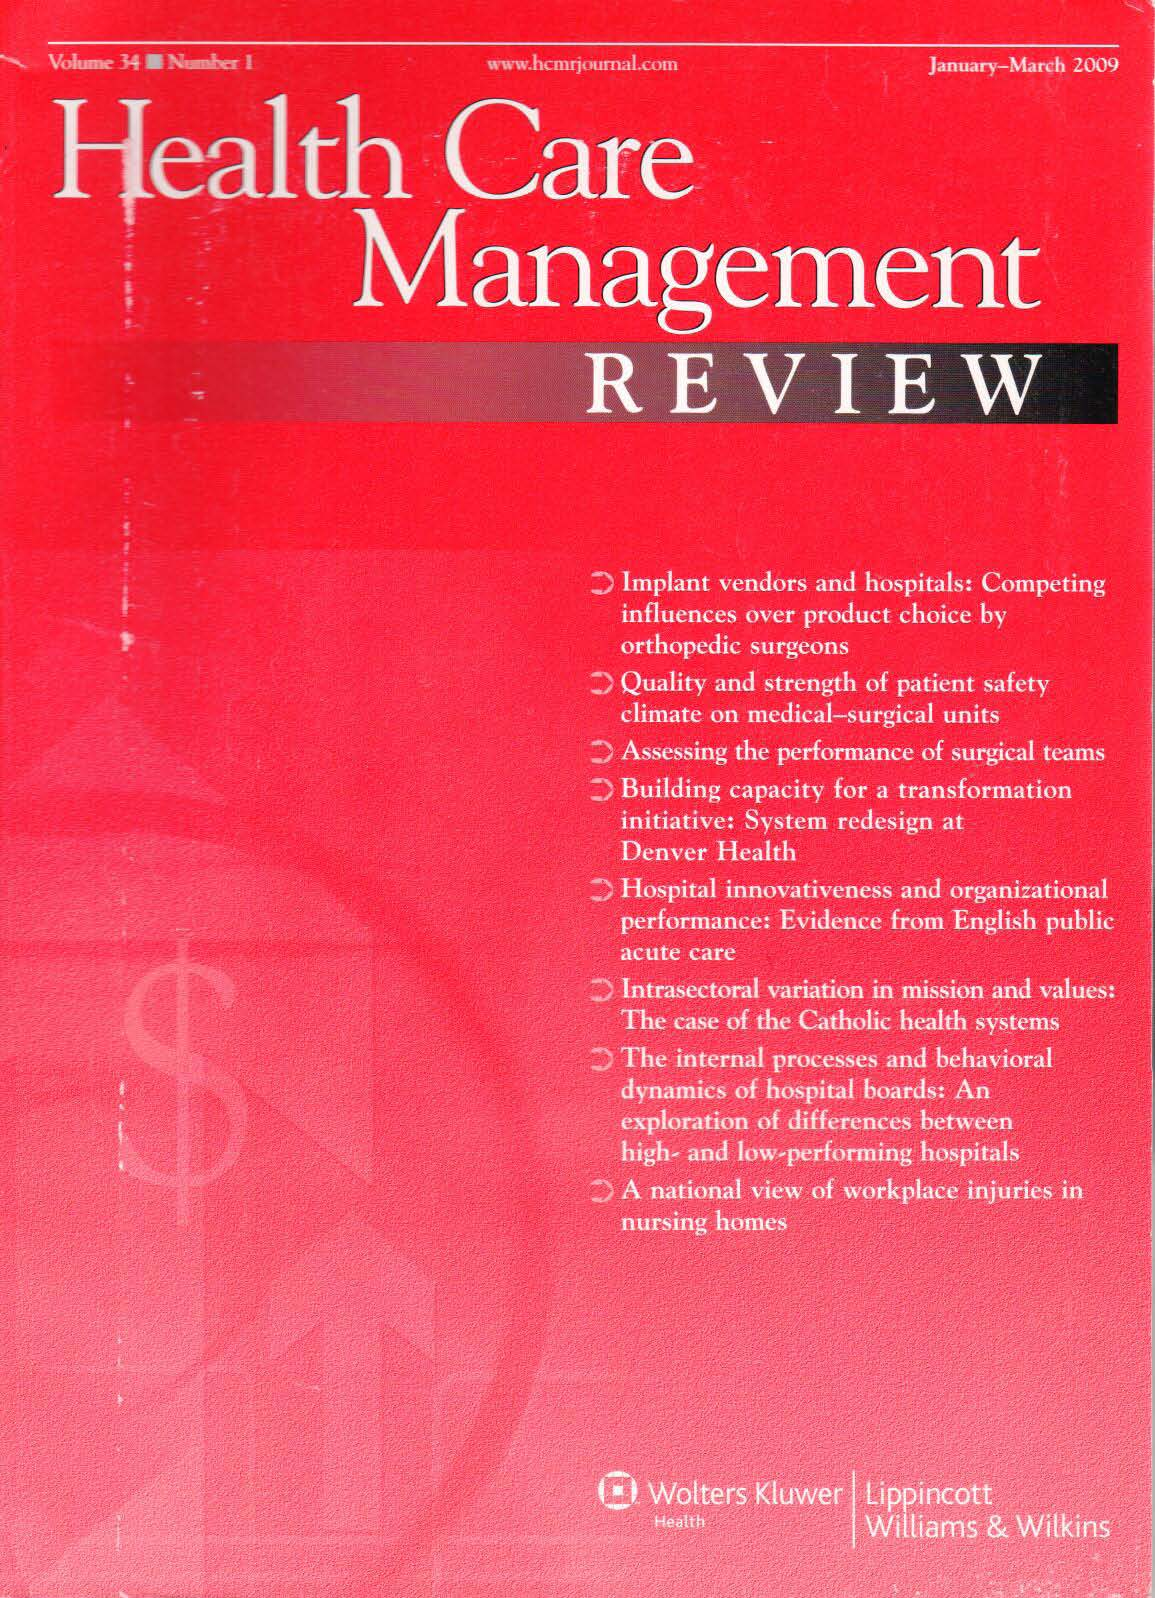 health-care-management-review-2009-Thumbnail